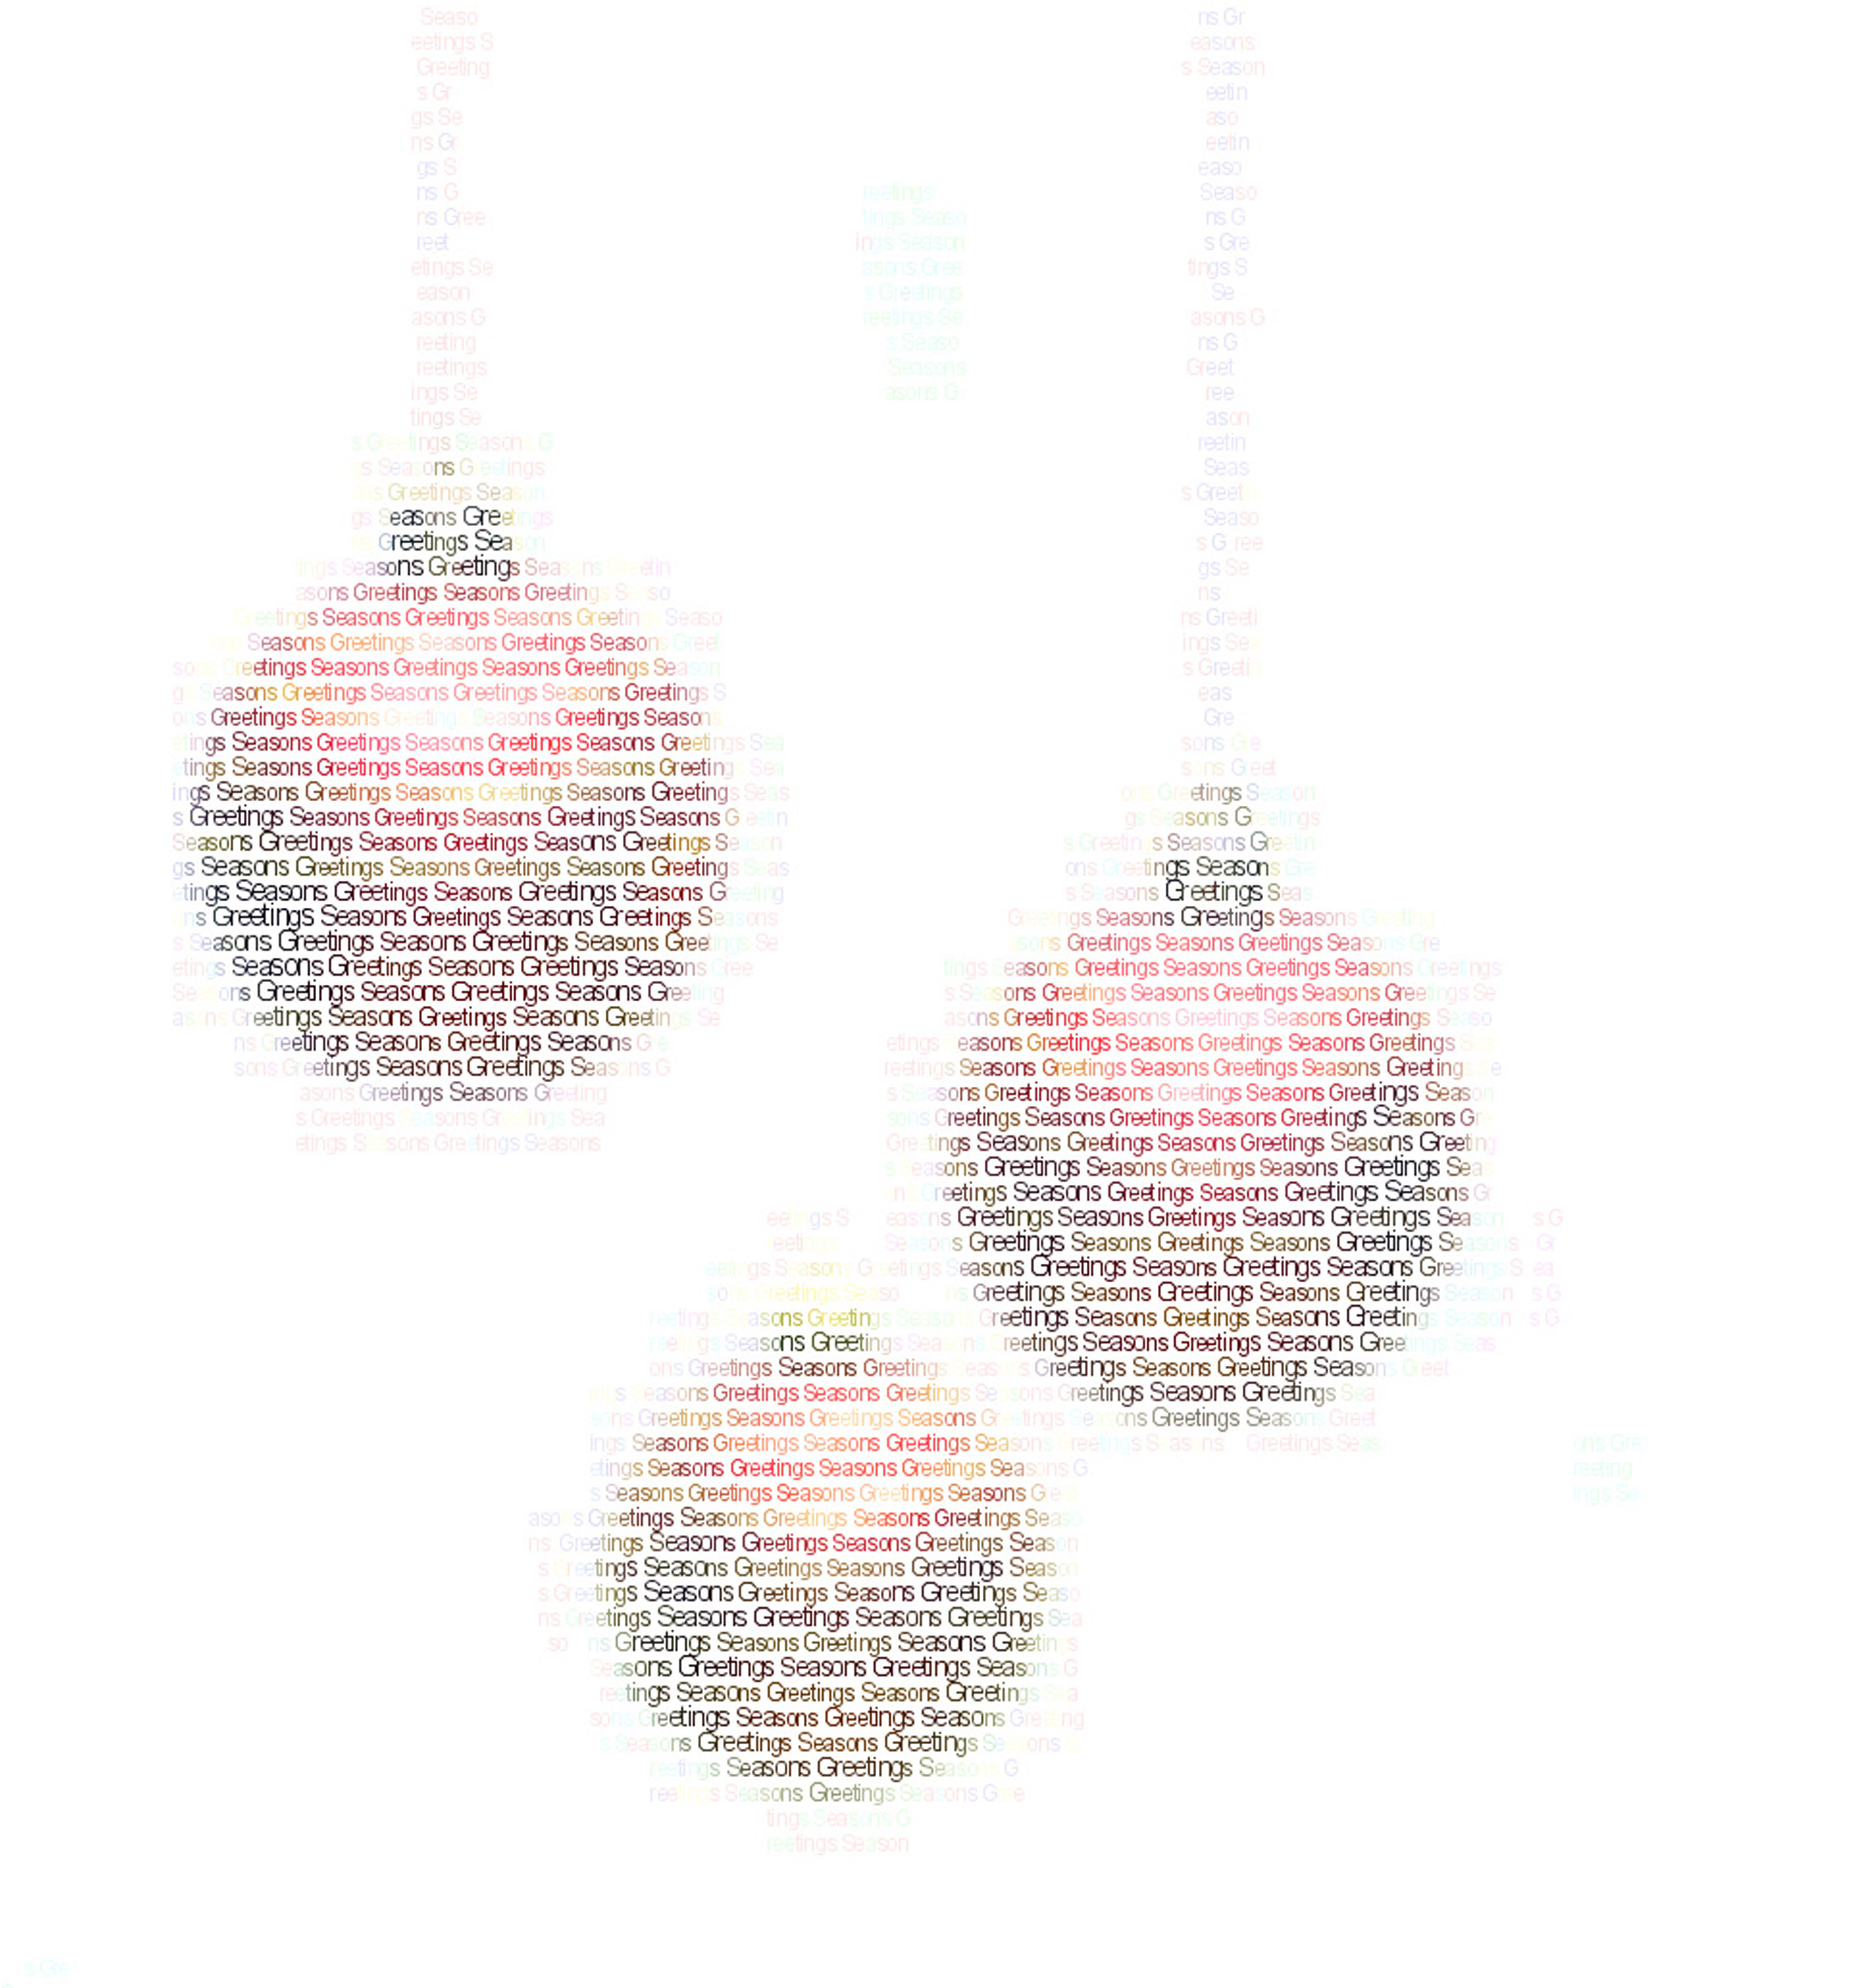 christmas ball ornaments created from strings of text spelling seasons greetings